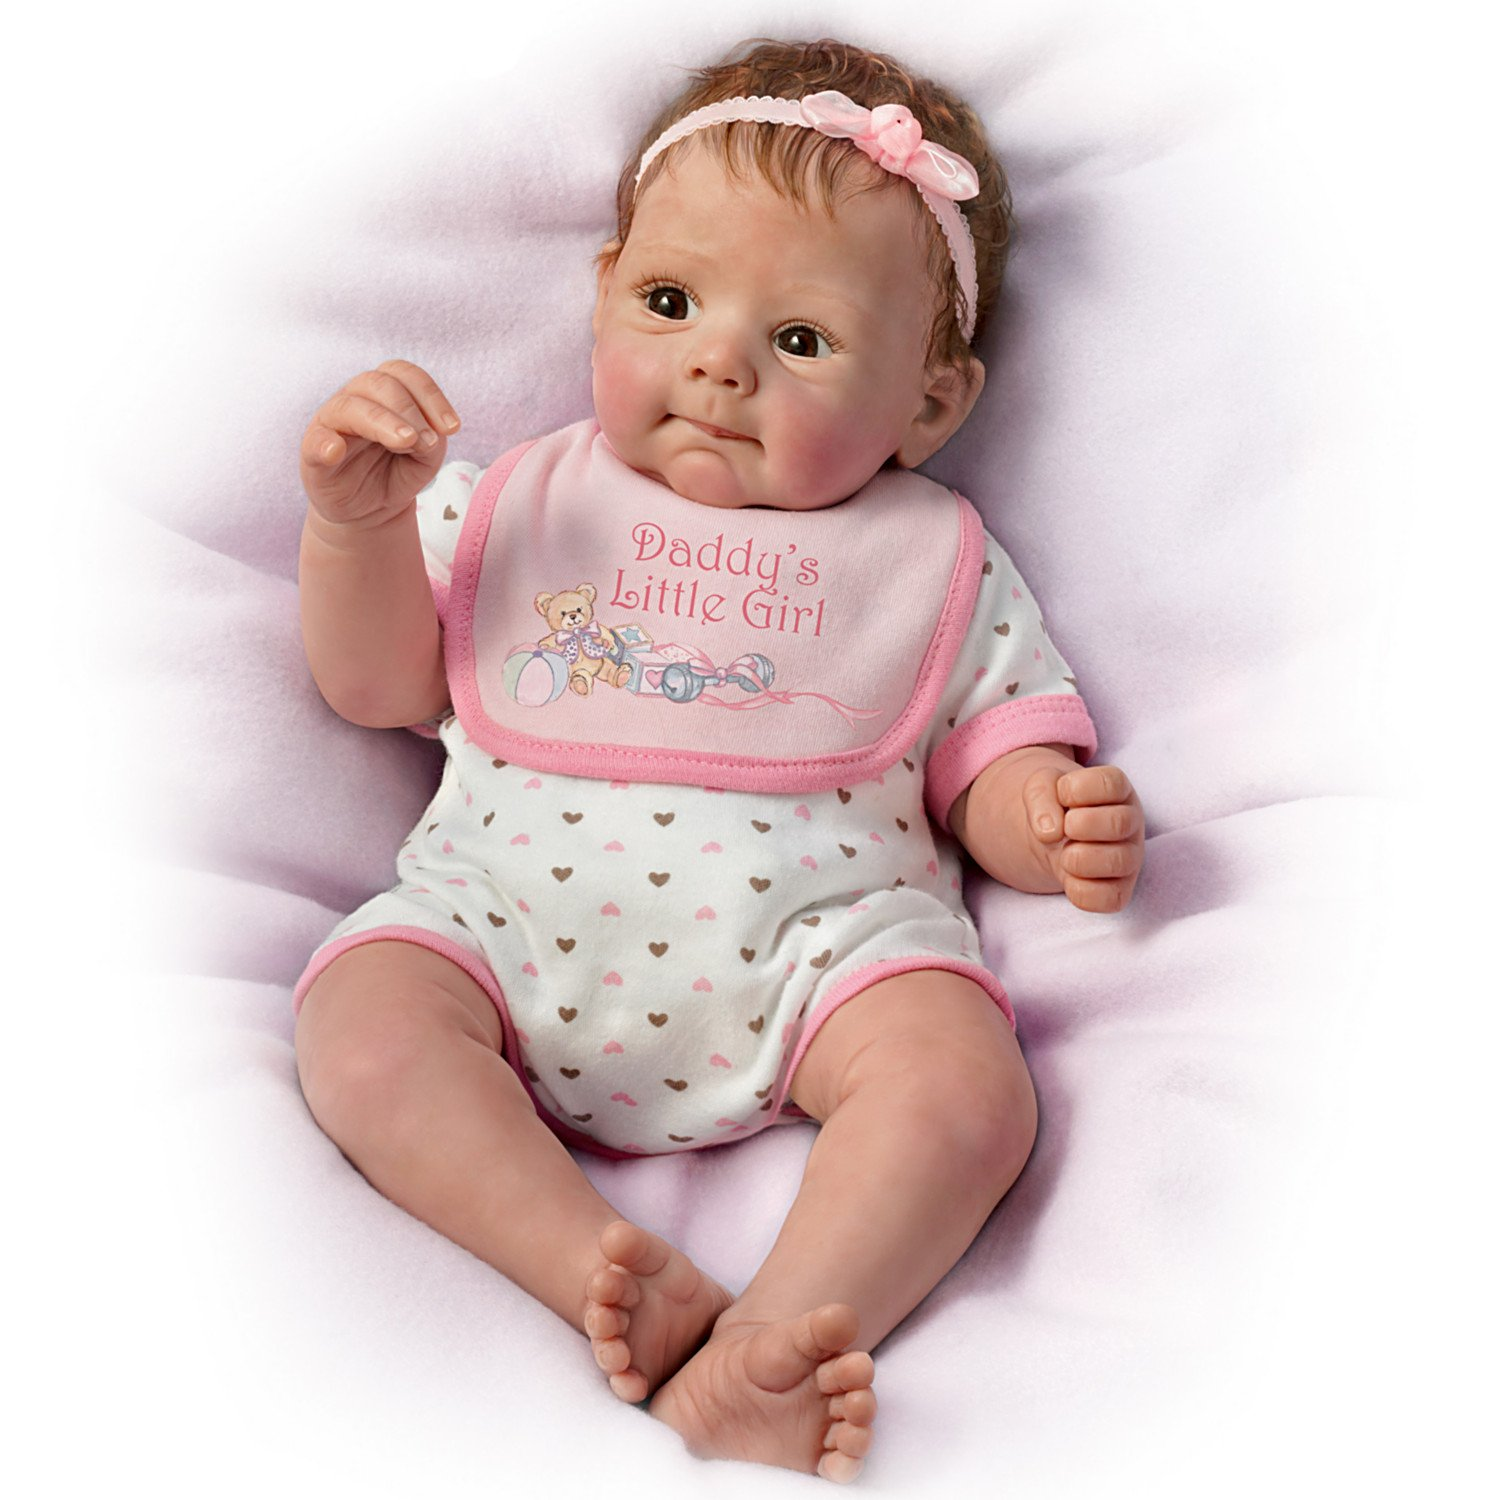 Daddy's Little Girl So Truly Real Lifelike Baby Doll By Sherry Rawn by The Bradford Exchange